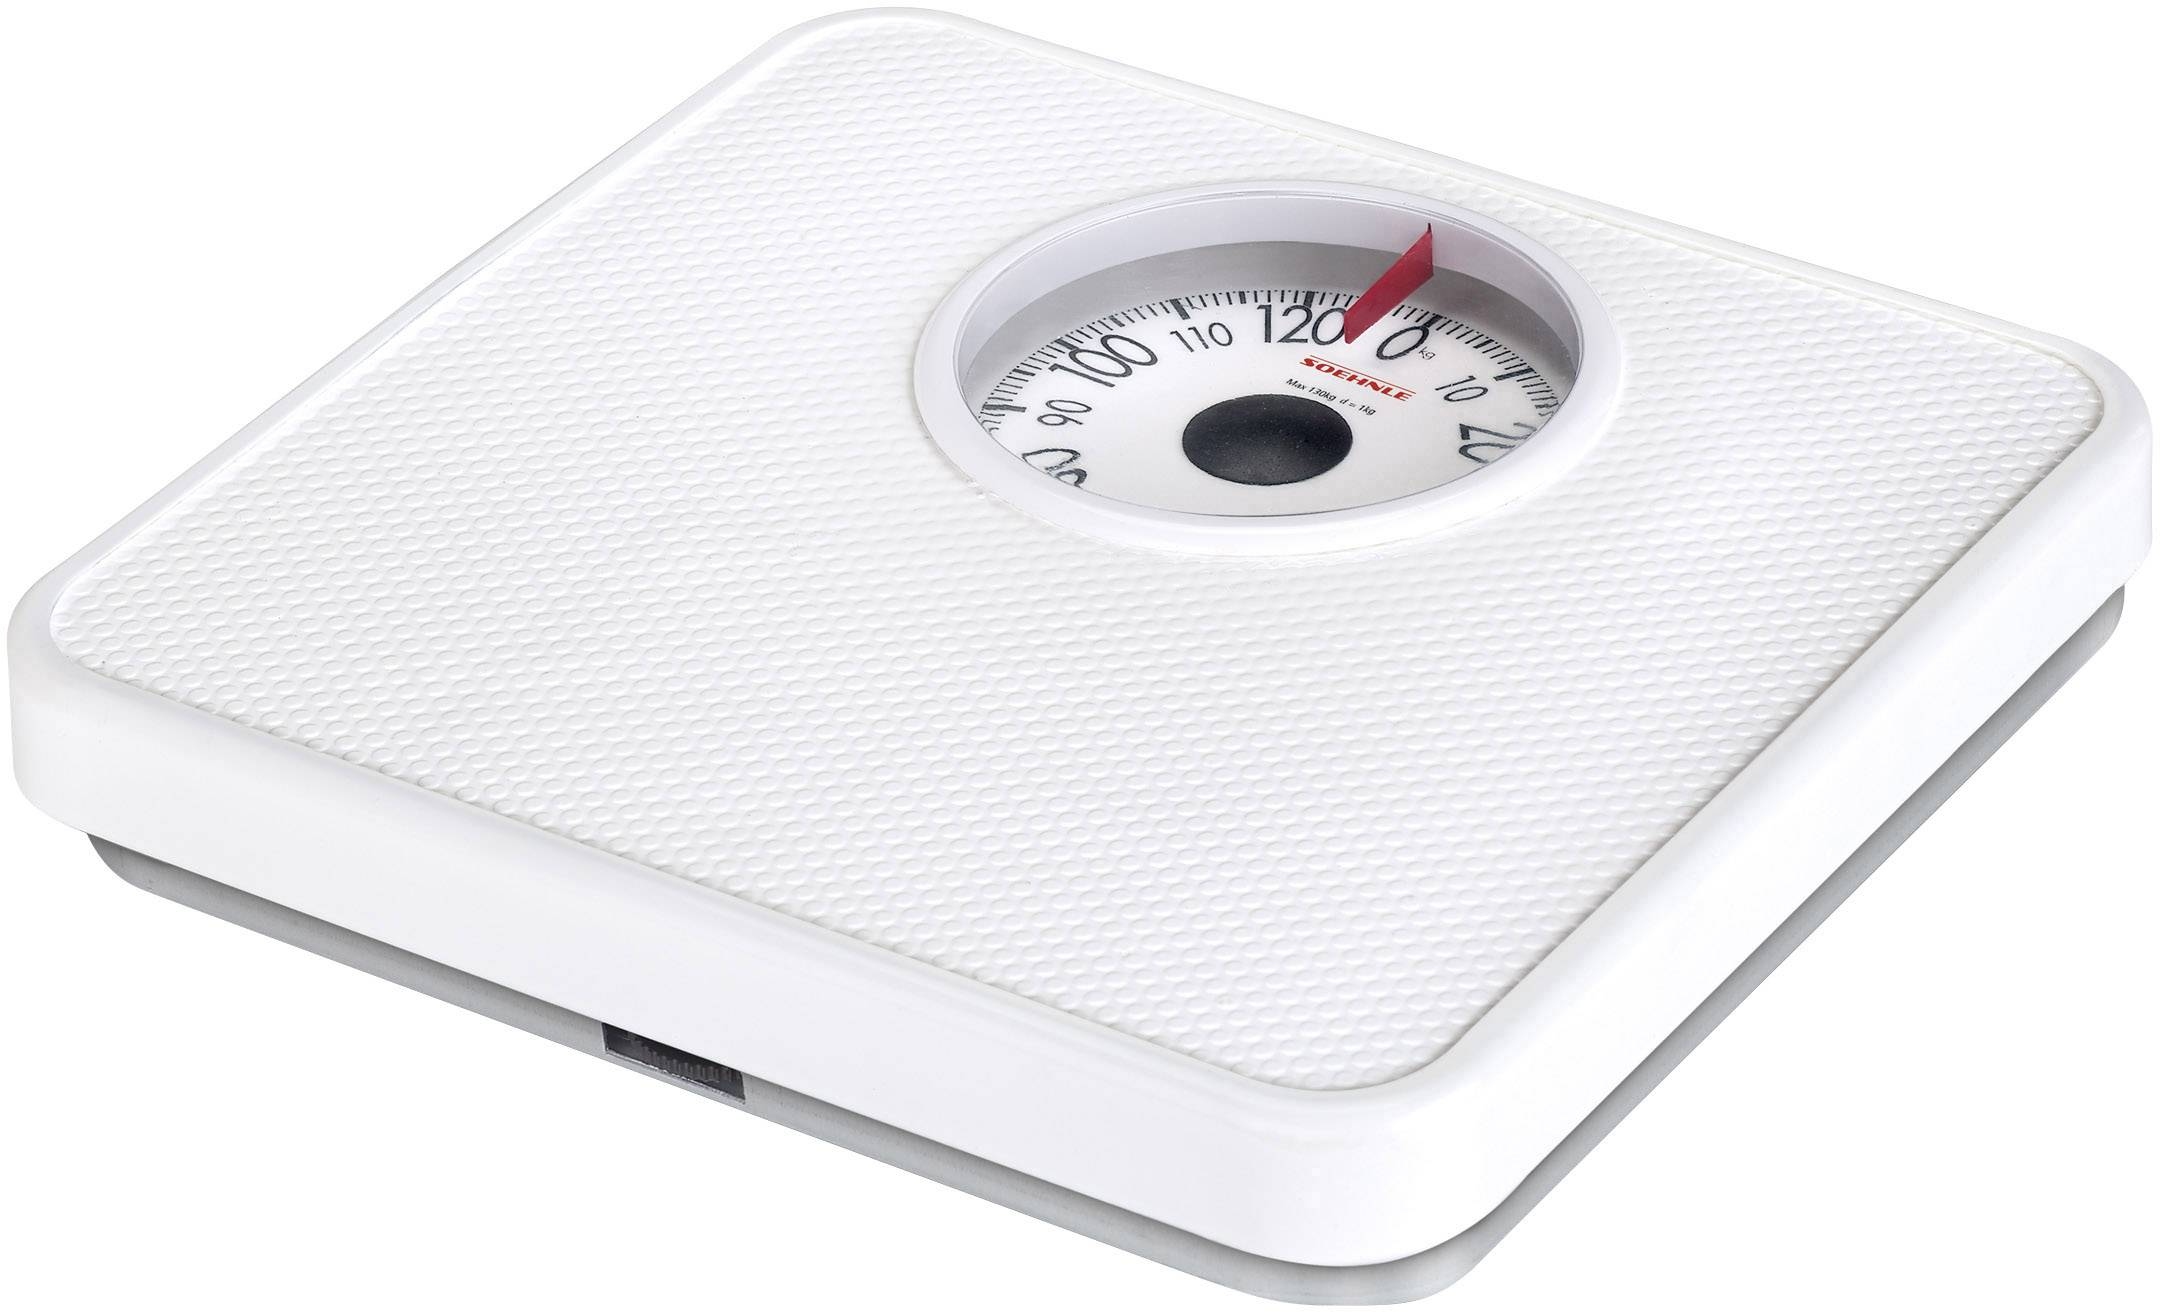 Gentil Analog Bathroom Scales Soehnle PWA Tempo Weight Rangeu003d130 Kg Whi